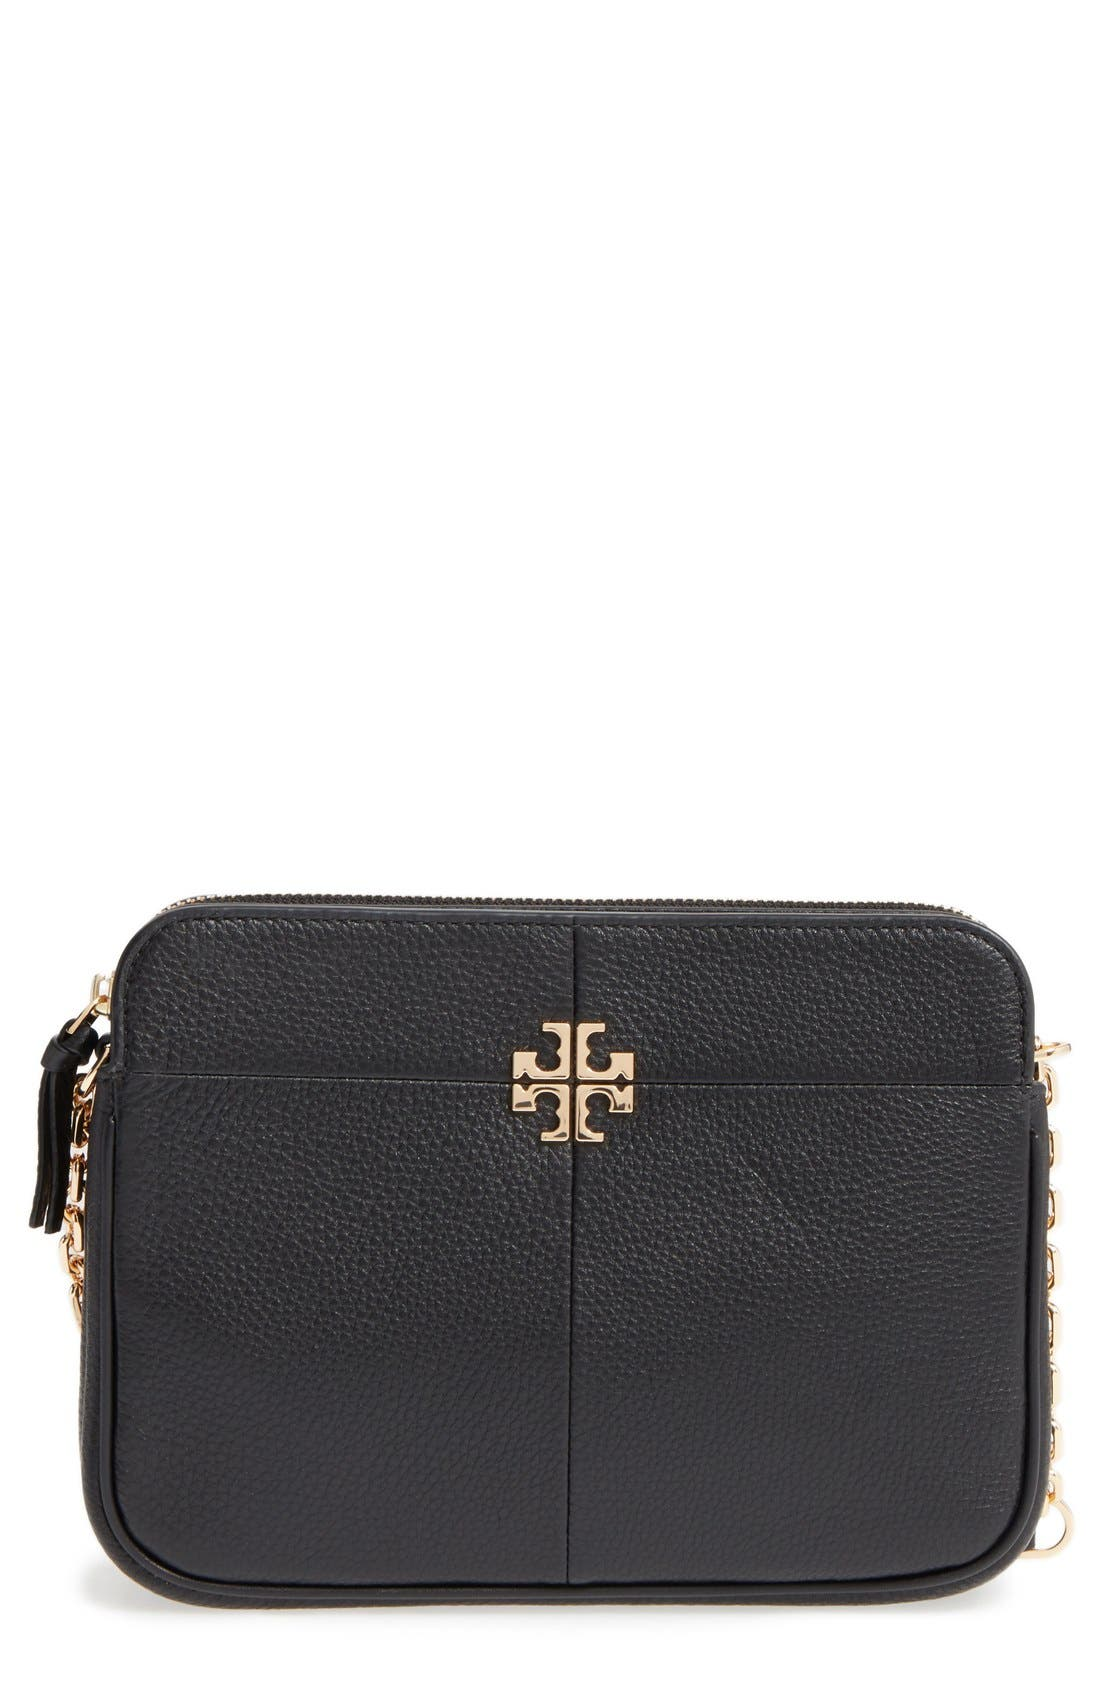 Main Image - Tory Burch Ivy Leather Crossbody Bag